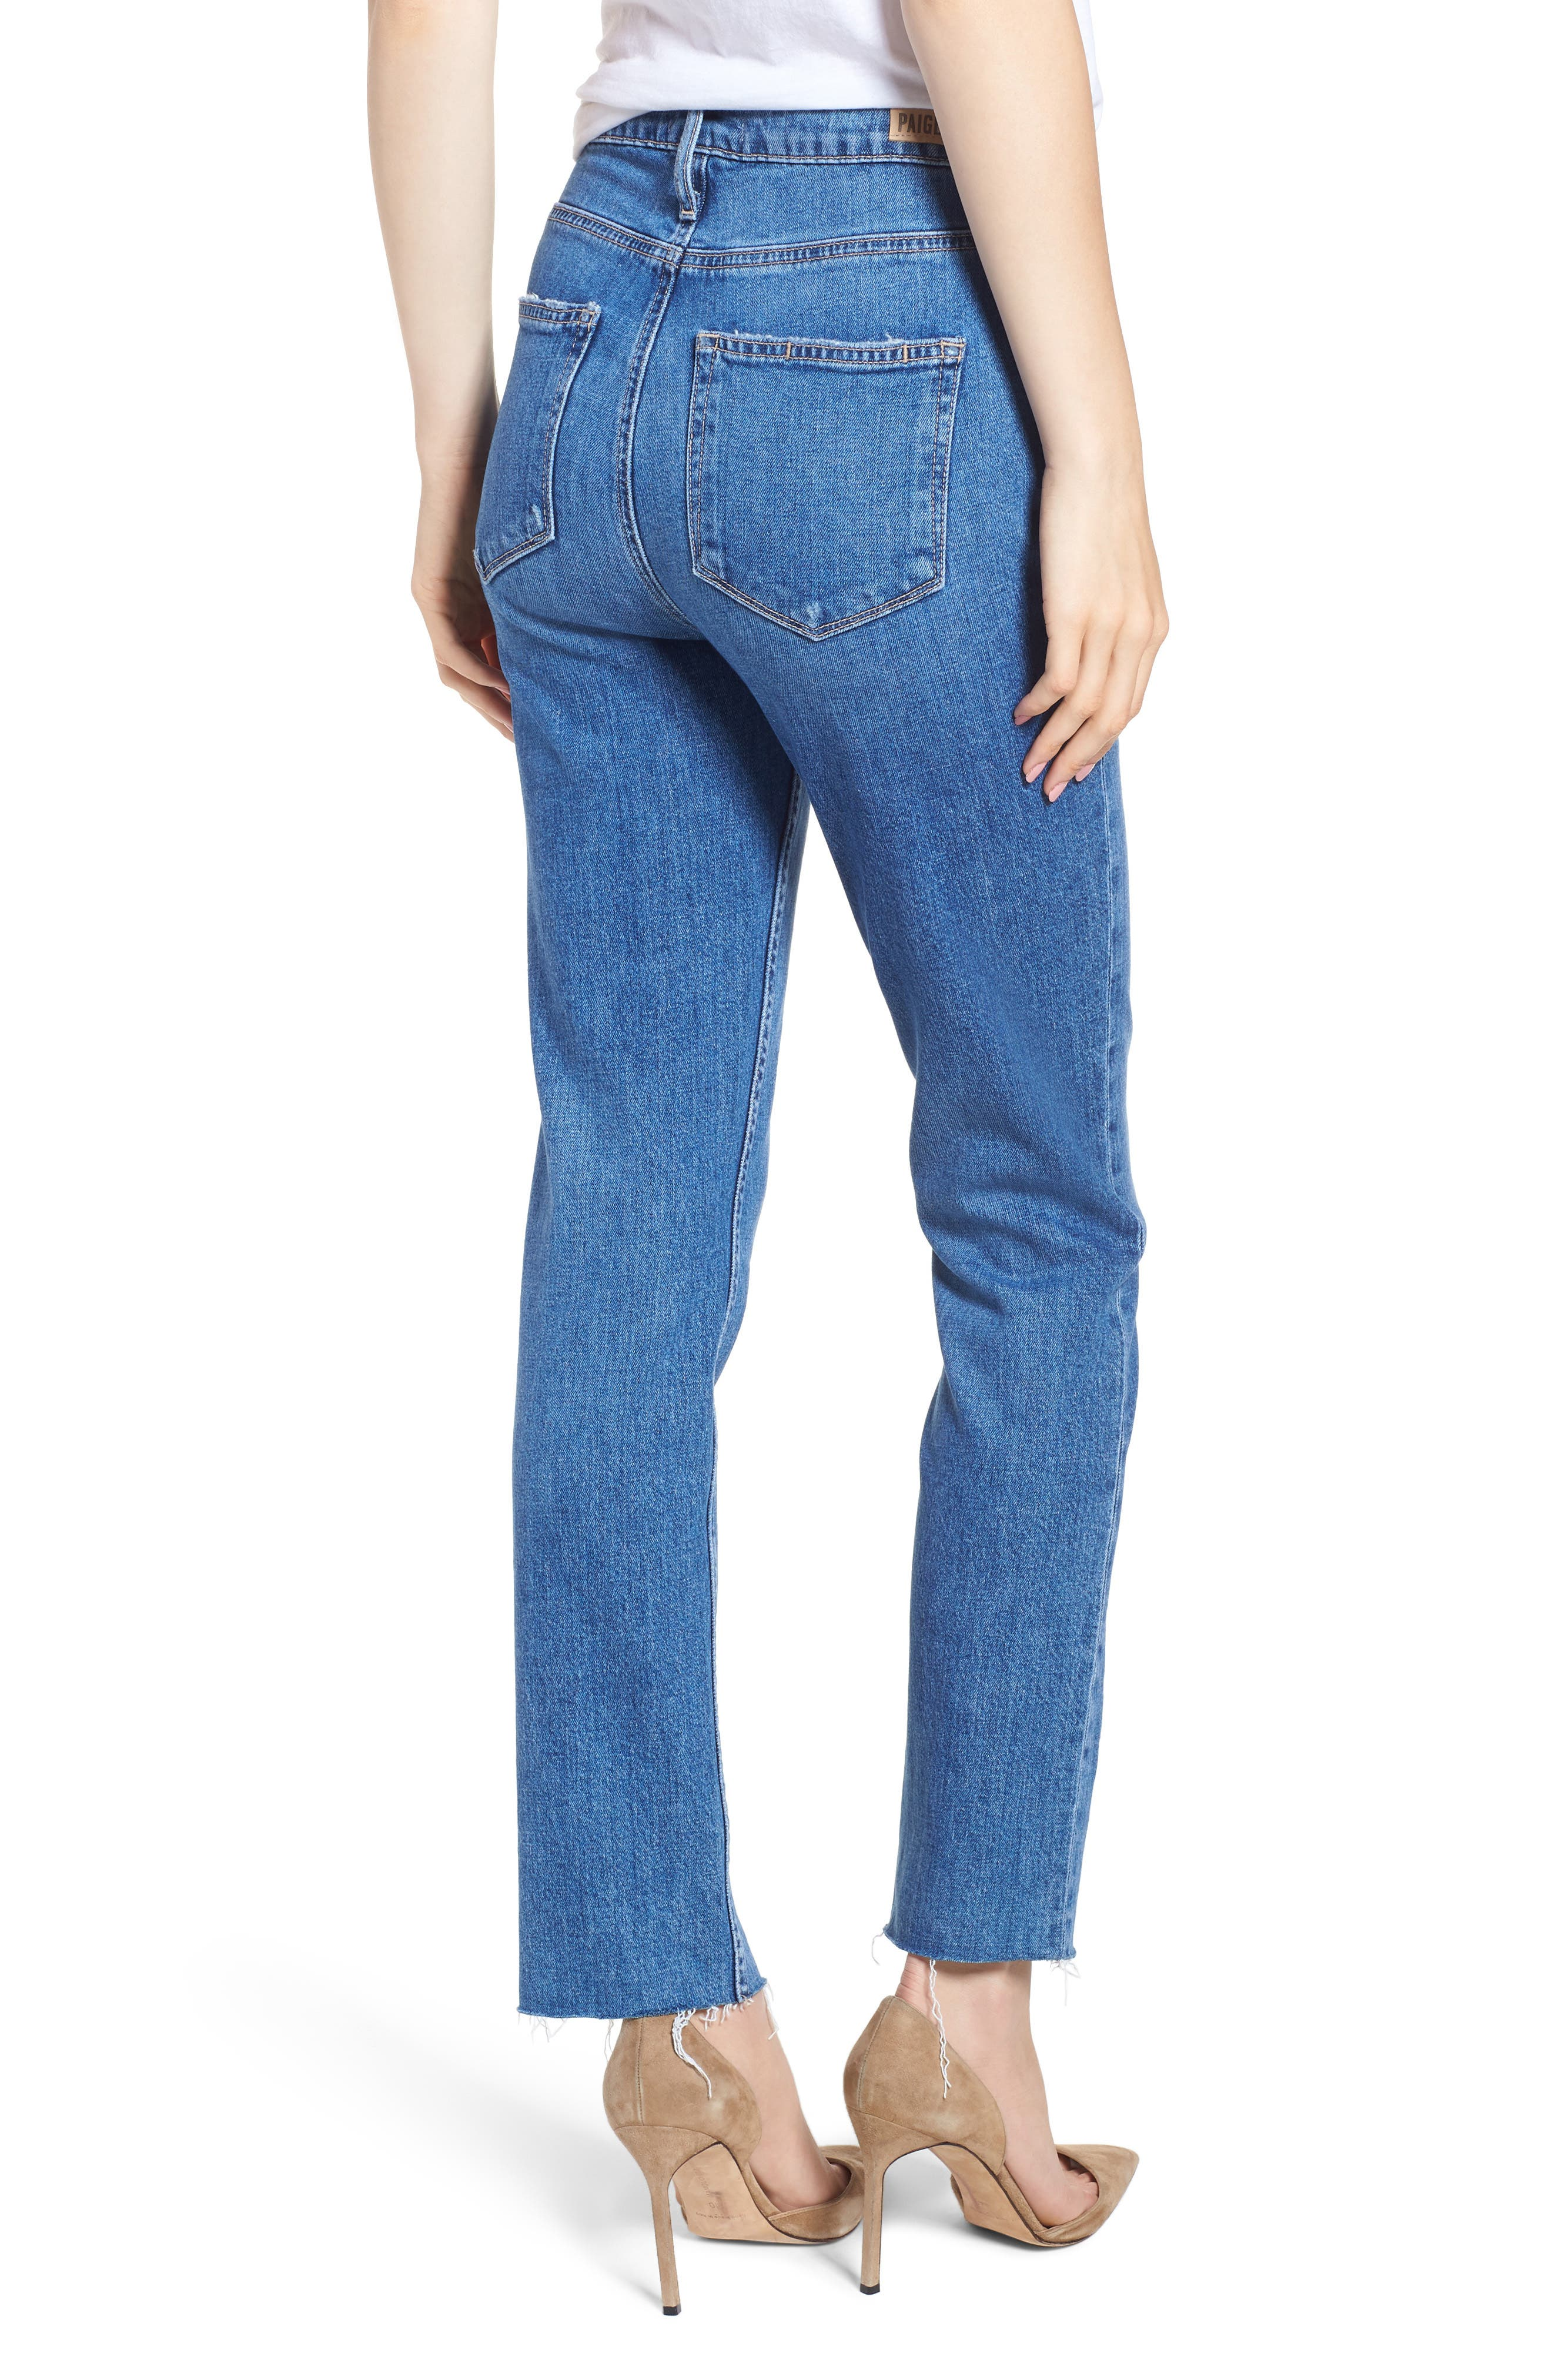 PAIGE, Vintage Hoxton High Waist Slim Raw Hem Jeans, Alternate thumbnail 2, color, BIRDIE